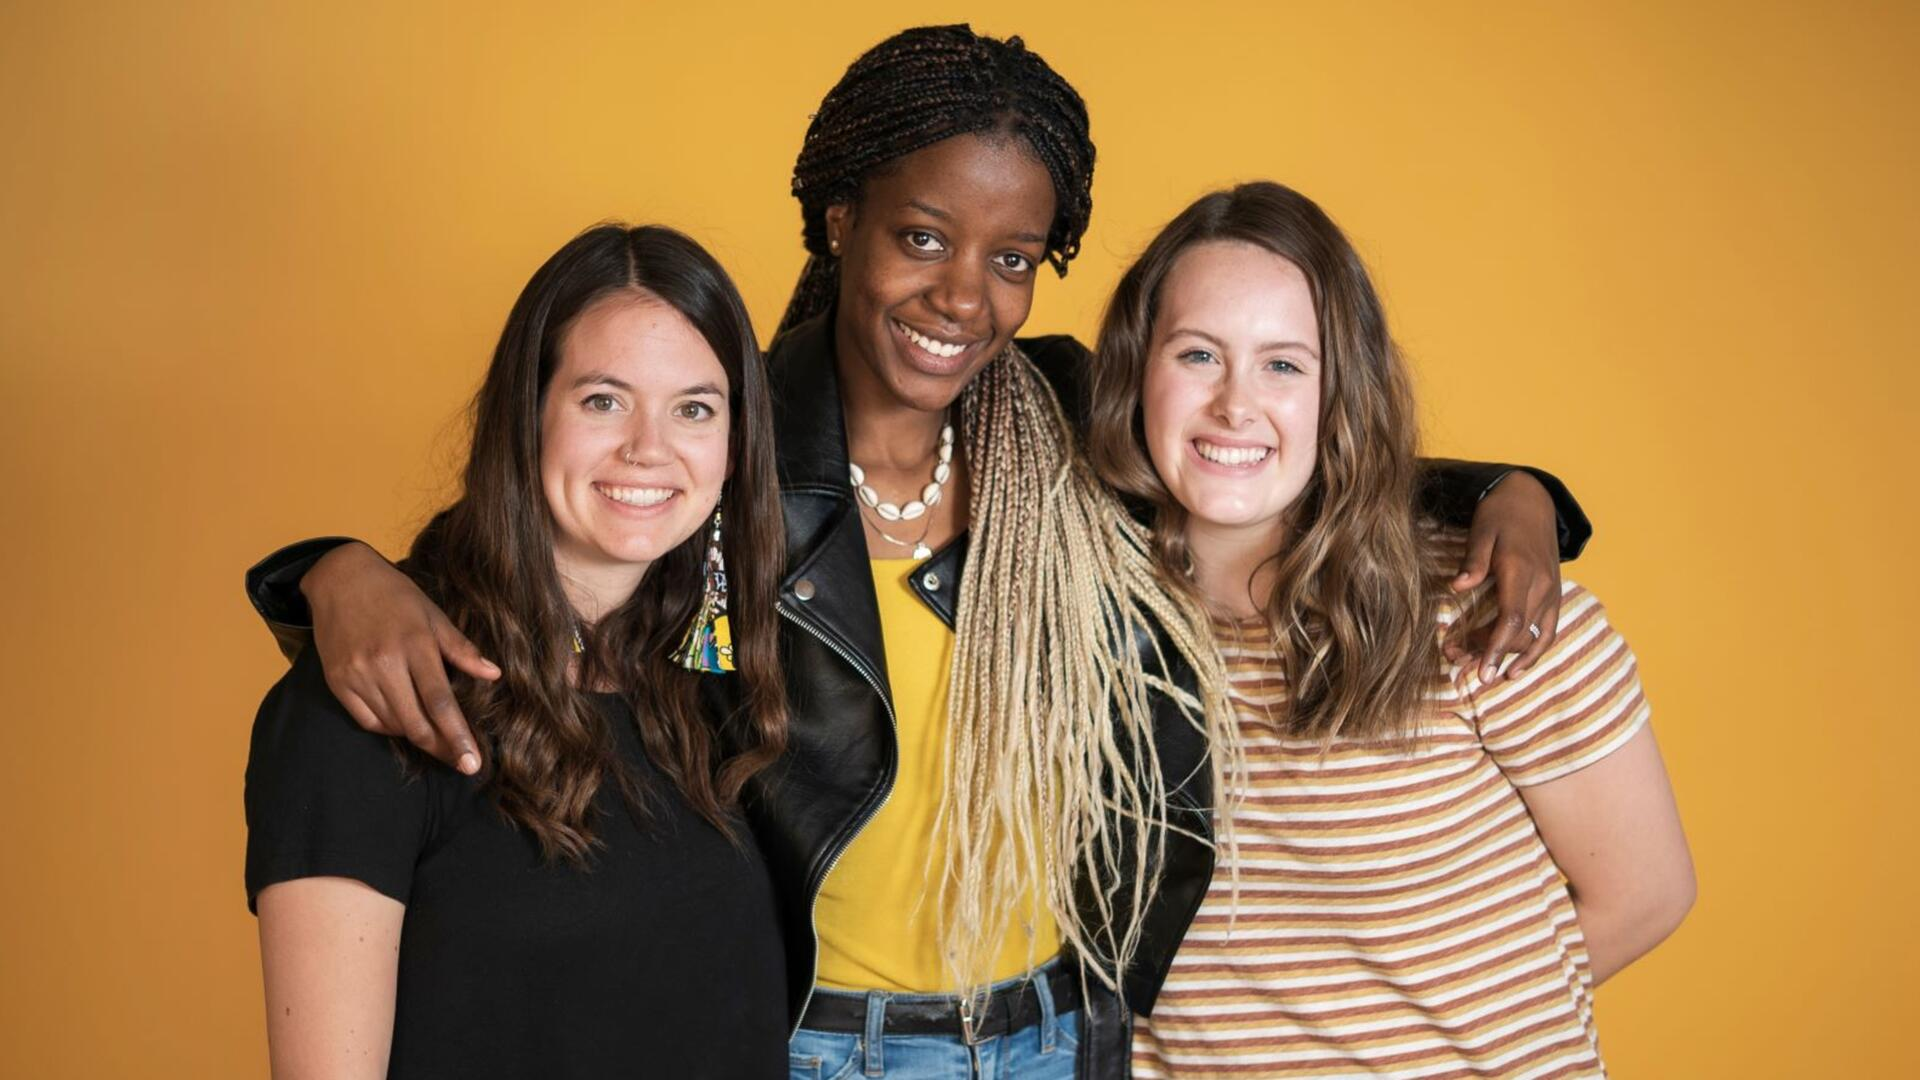 Christelle Igihozo with her friends Janna Brown and Charlee Andree